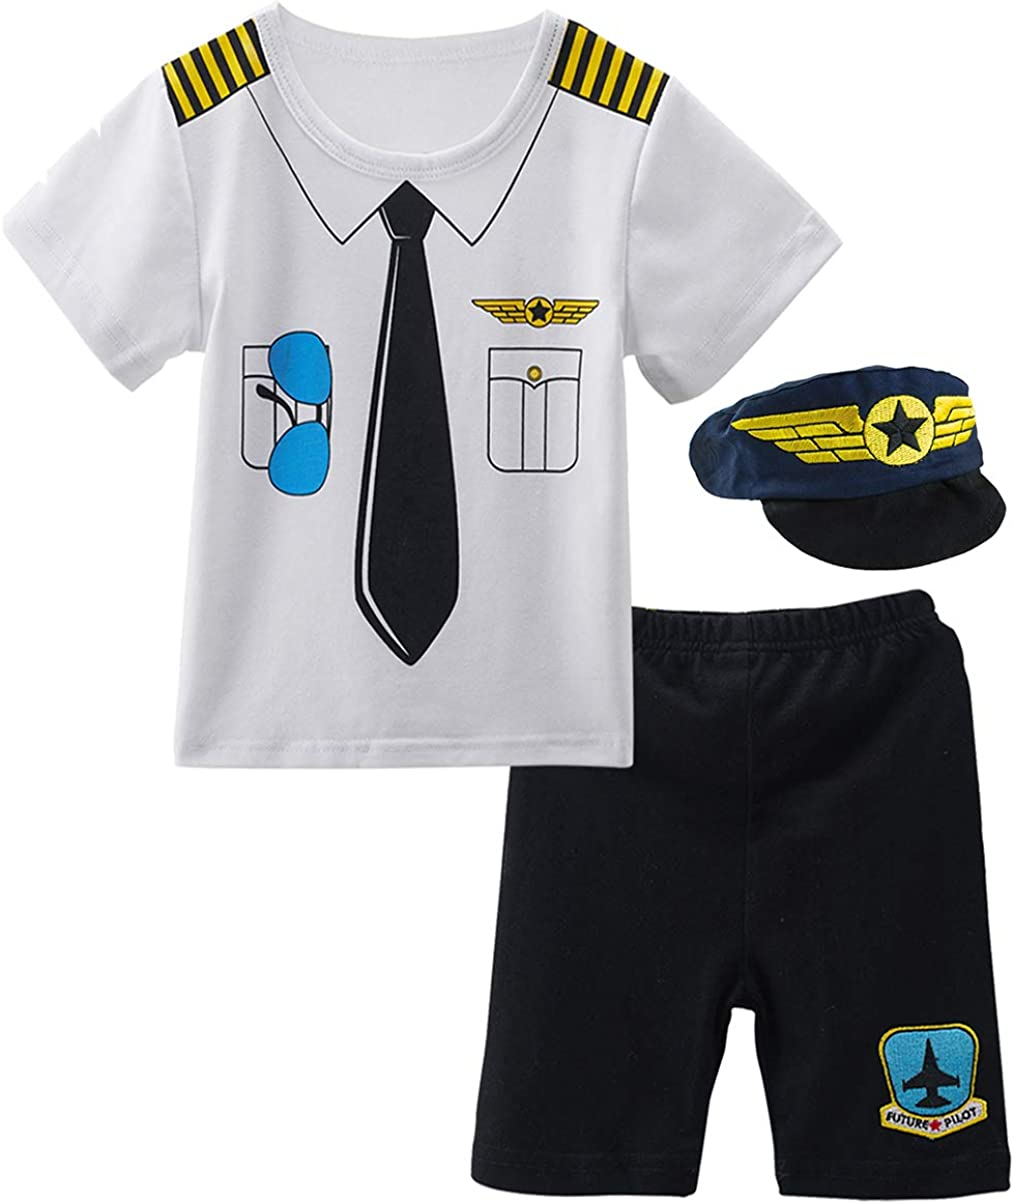 COSLAND Baby Boys Pilot Costume Short Sleeve Outfits with Hat